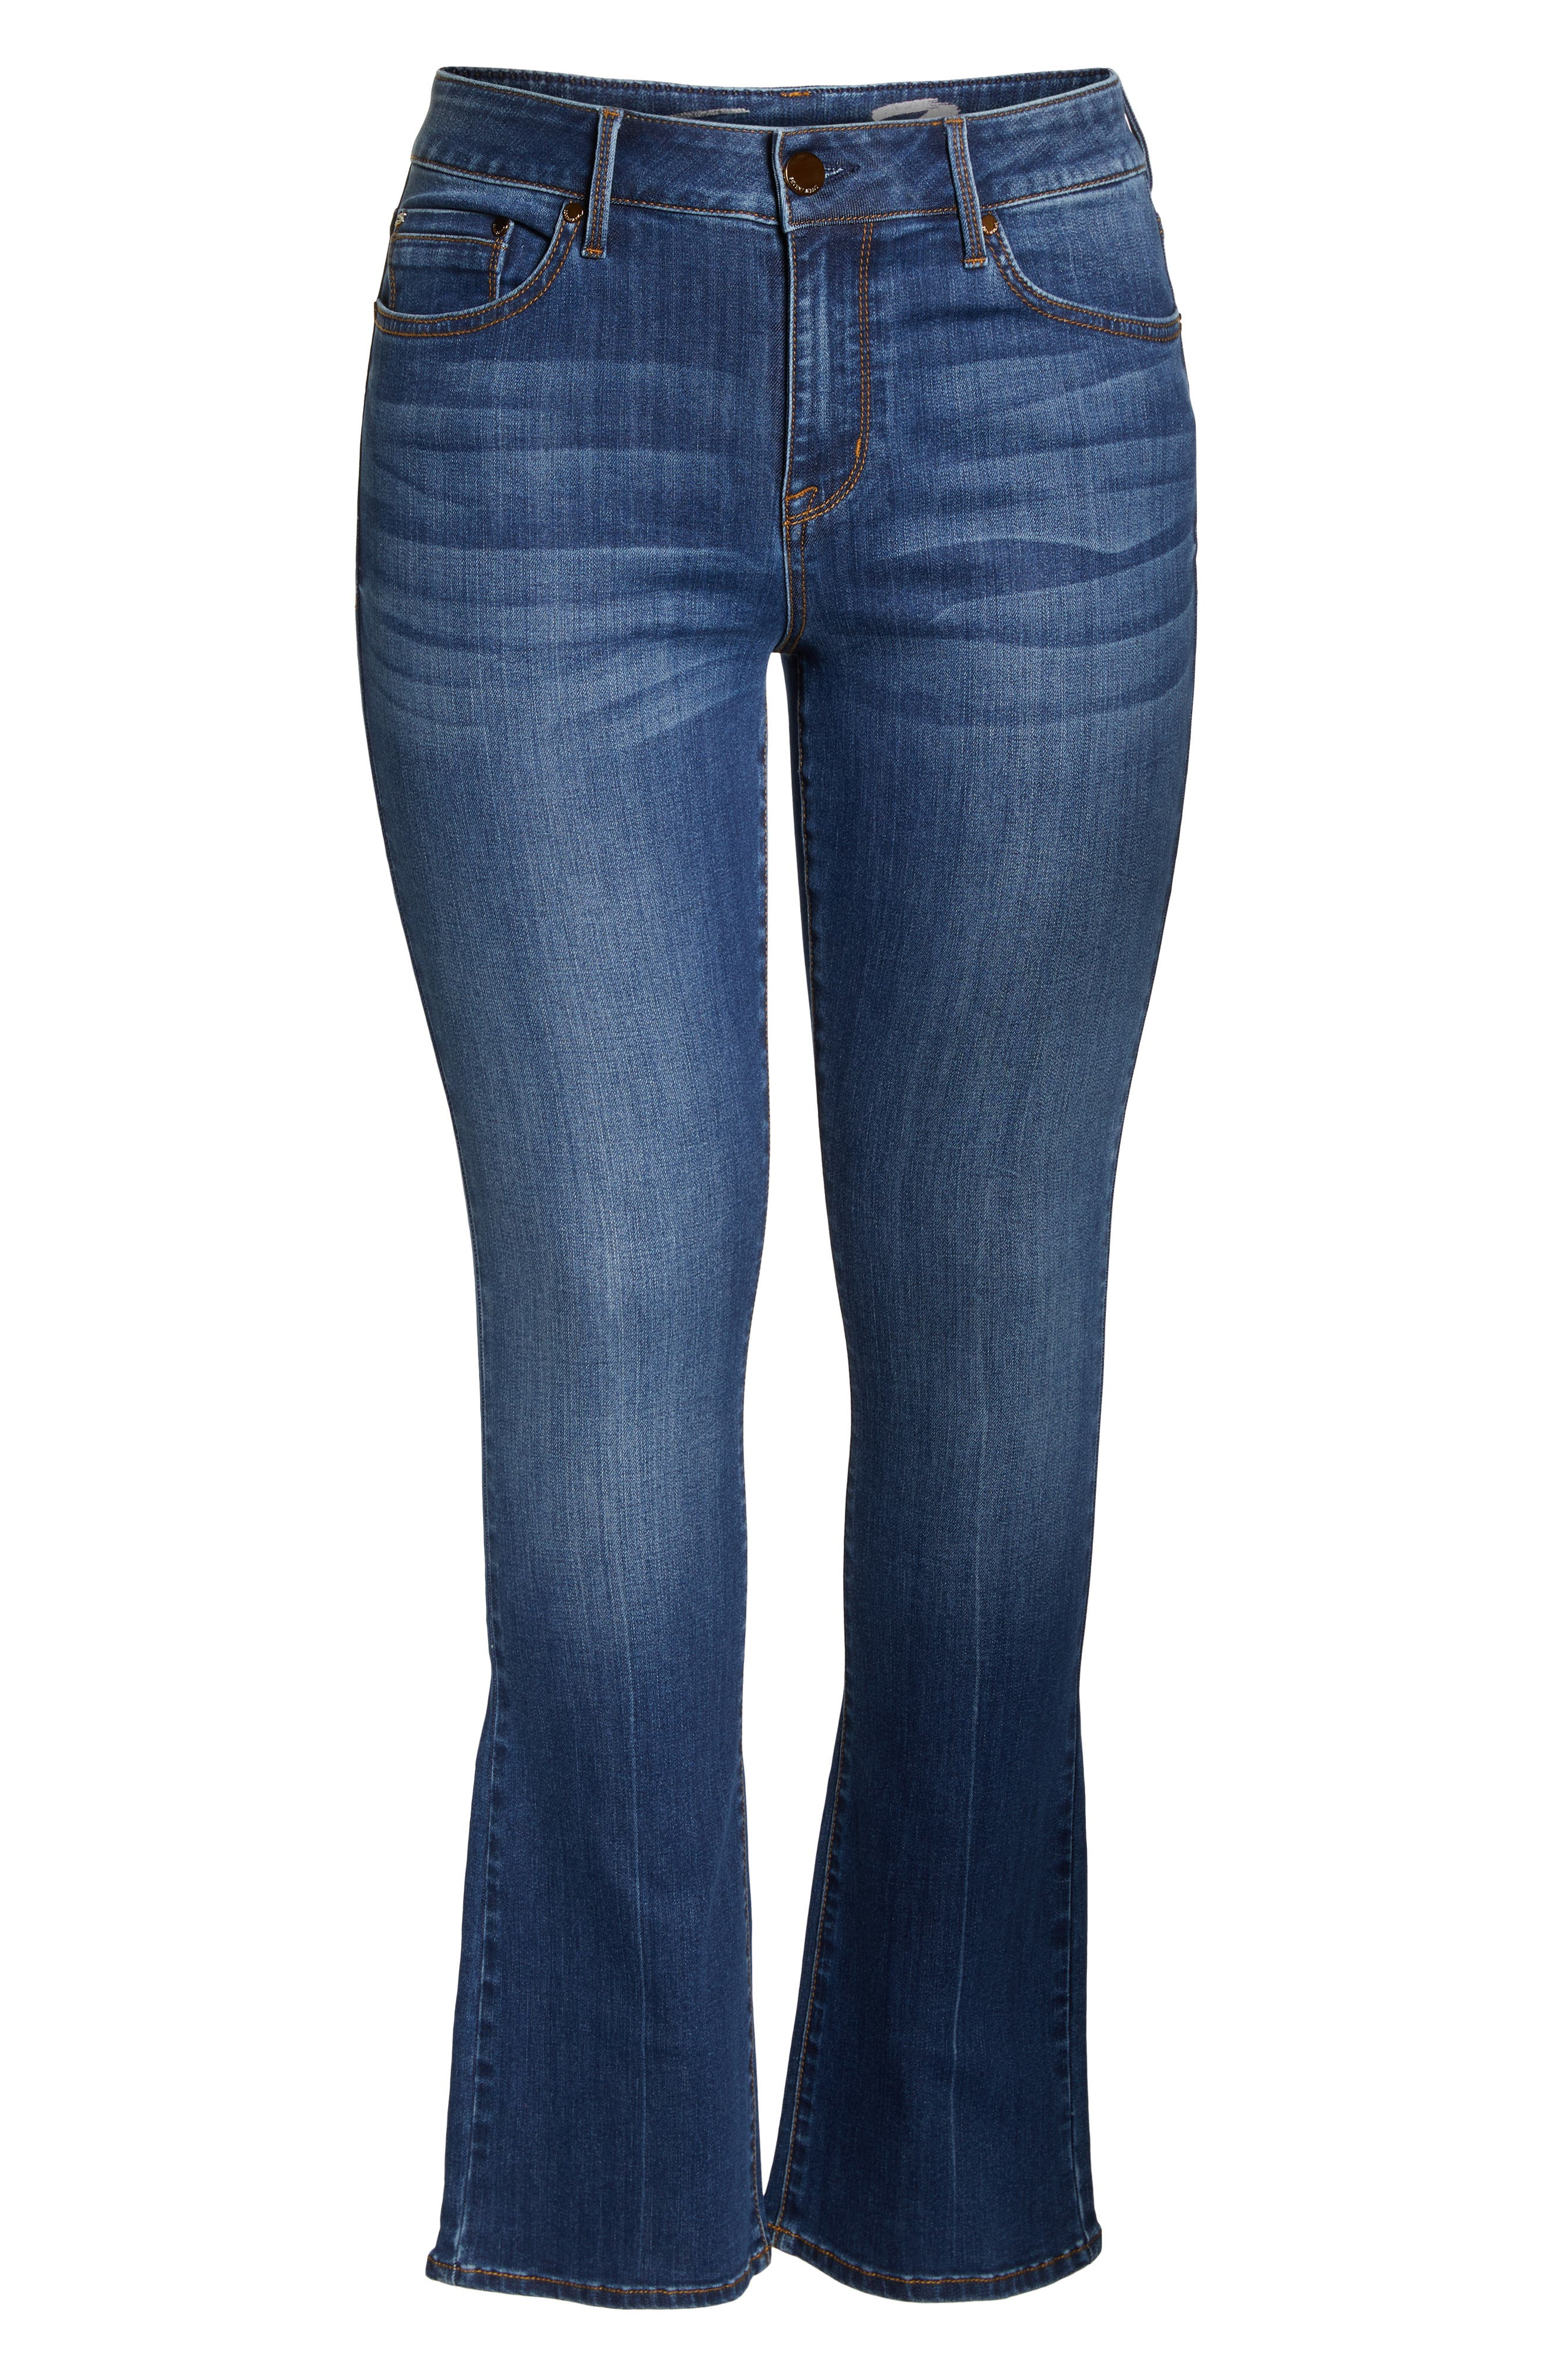 SEVEN7, Mid Rise Micro Bootcut Jeans, Alternate thumbnail 7, color, GENERATION